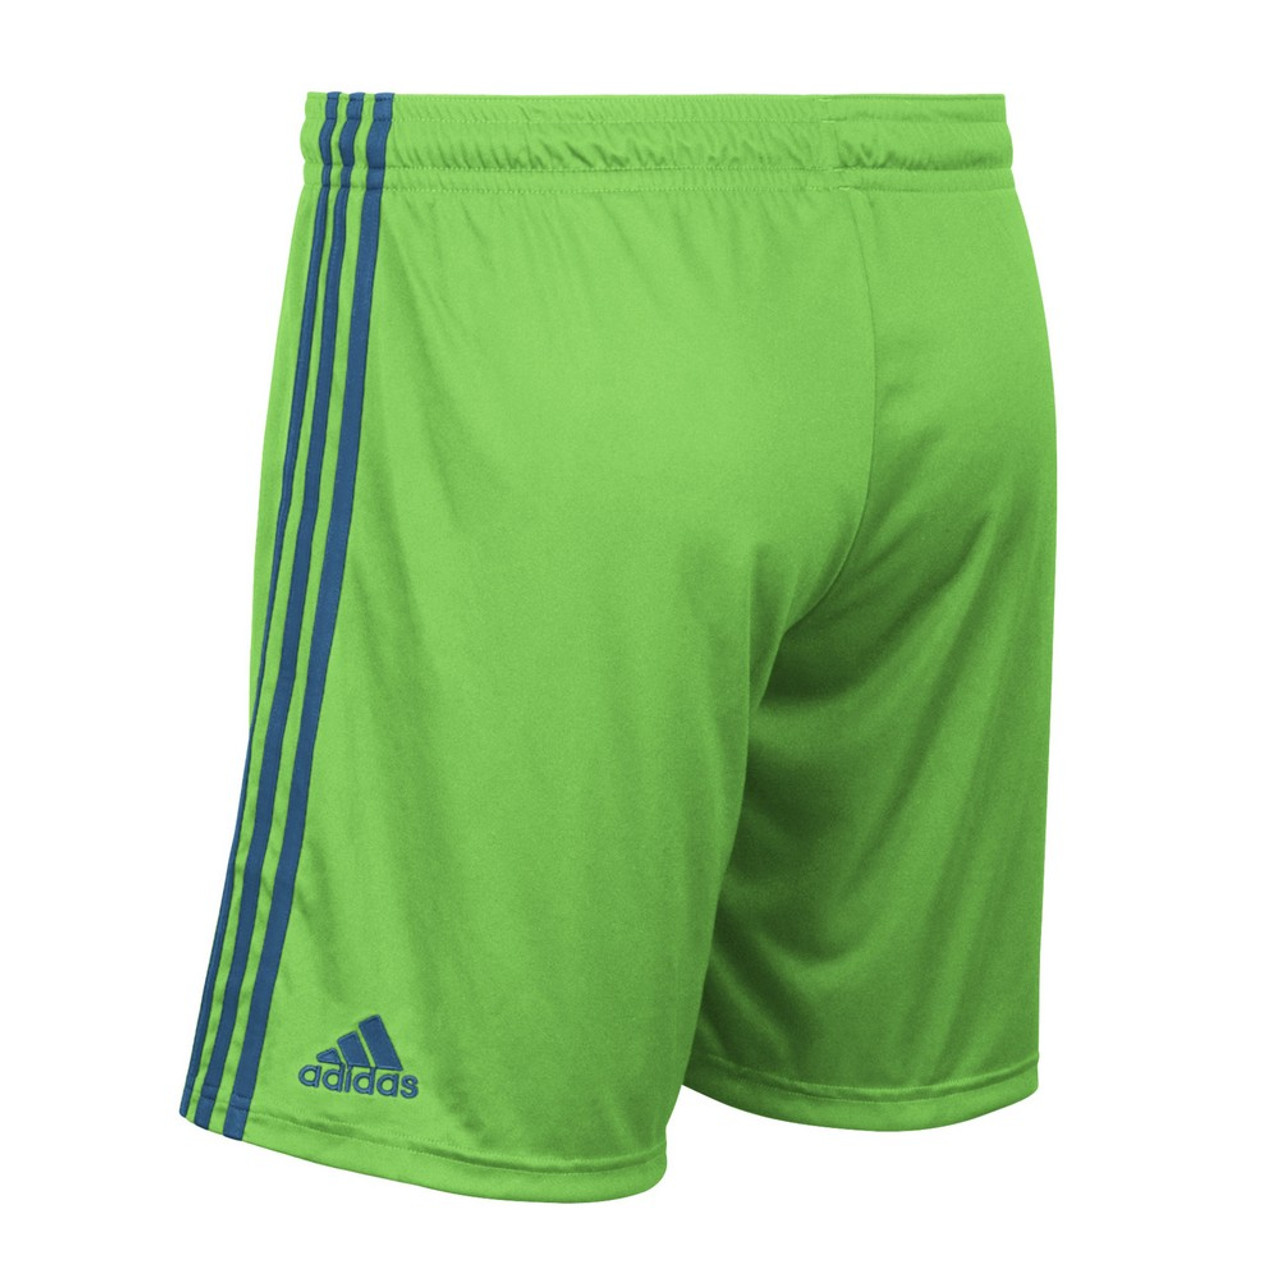 Seattle Sounders FC Shorts Replica Adidas Soccer Shorts